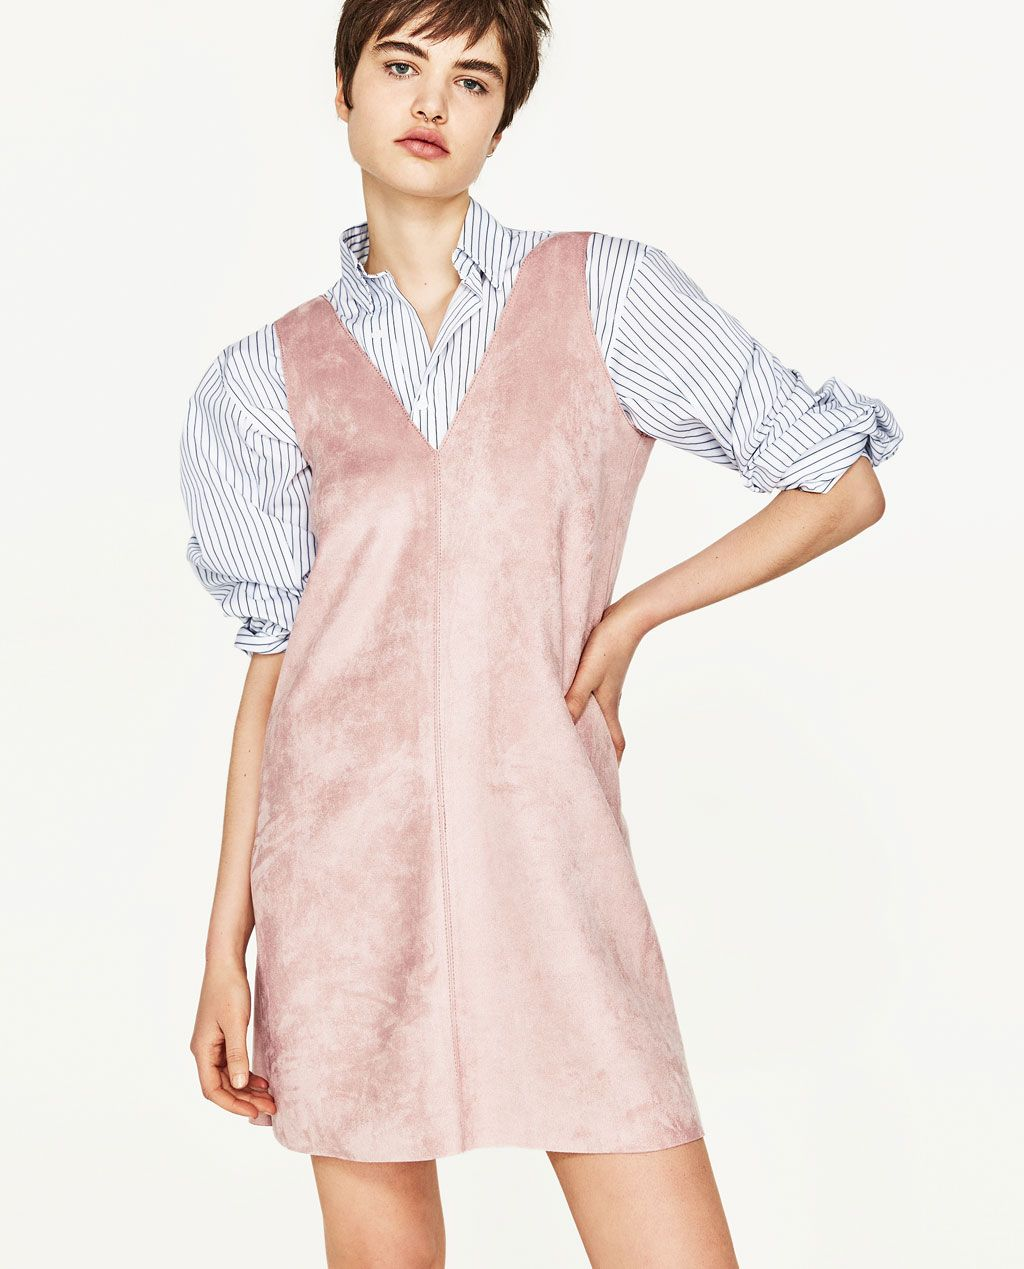 061bfb0b SUEDE EFFECT DRESS-View All-DRESSES-WOMAN-SALE | ZARA United States ...